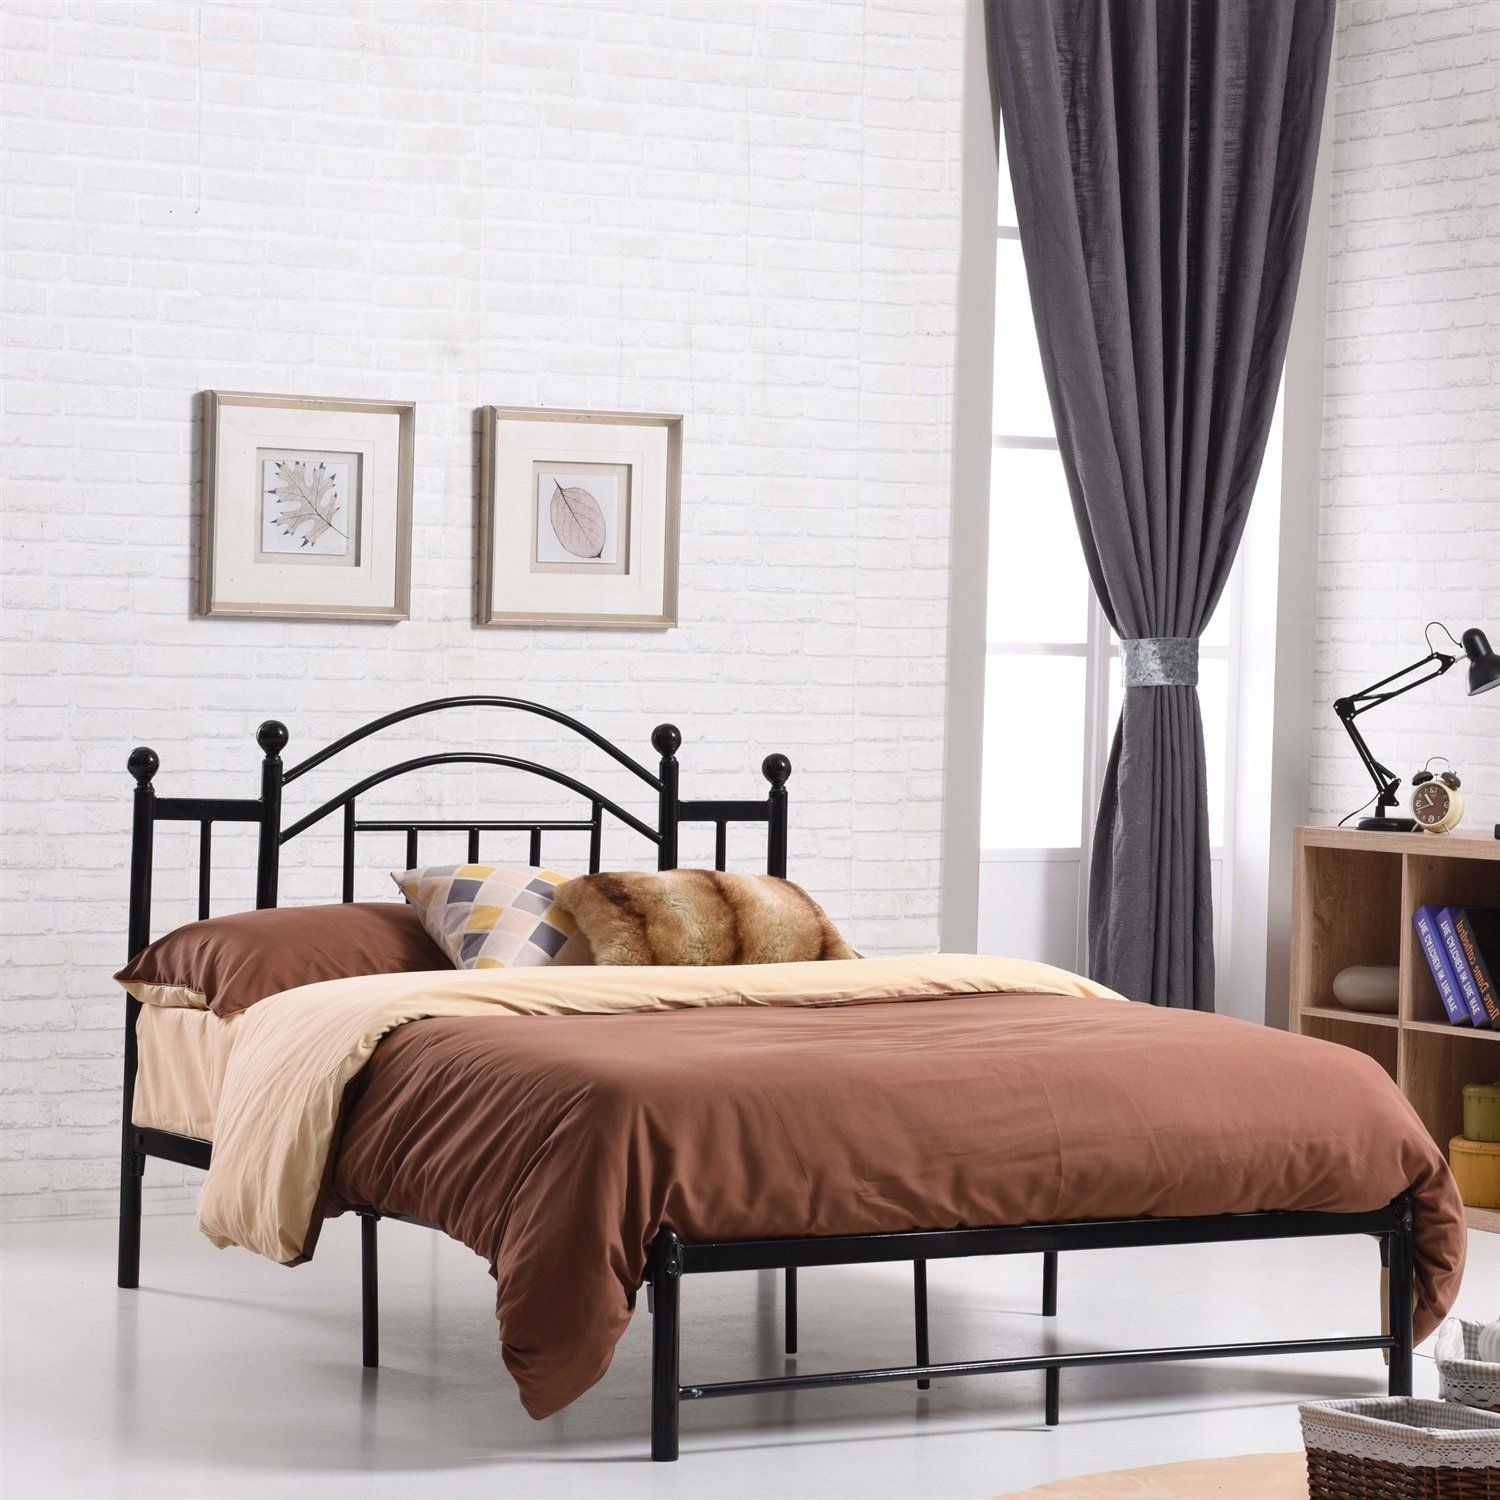 Full size Black Metal Platform Bed Frame with Arched